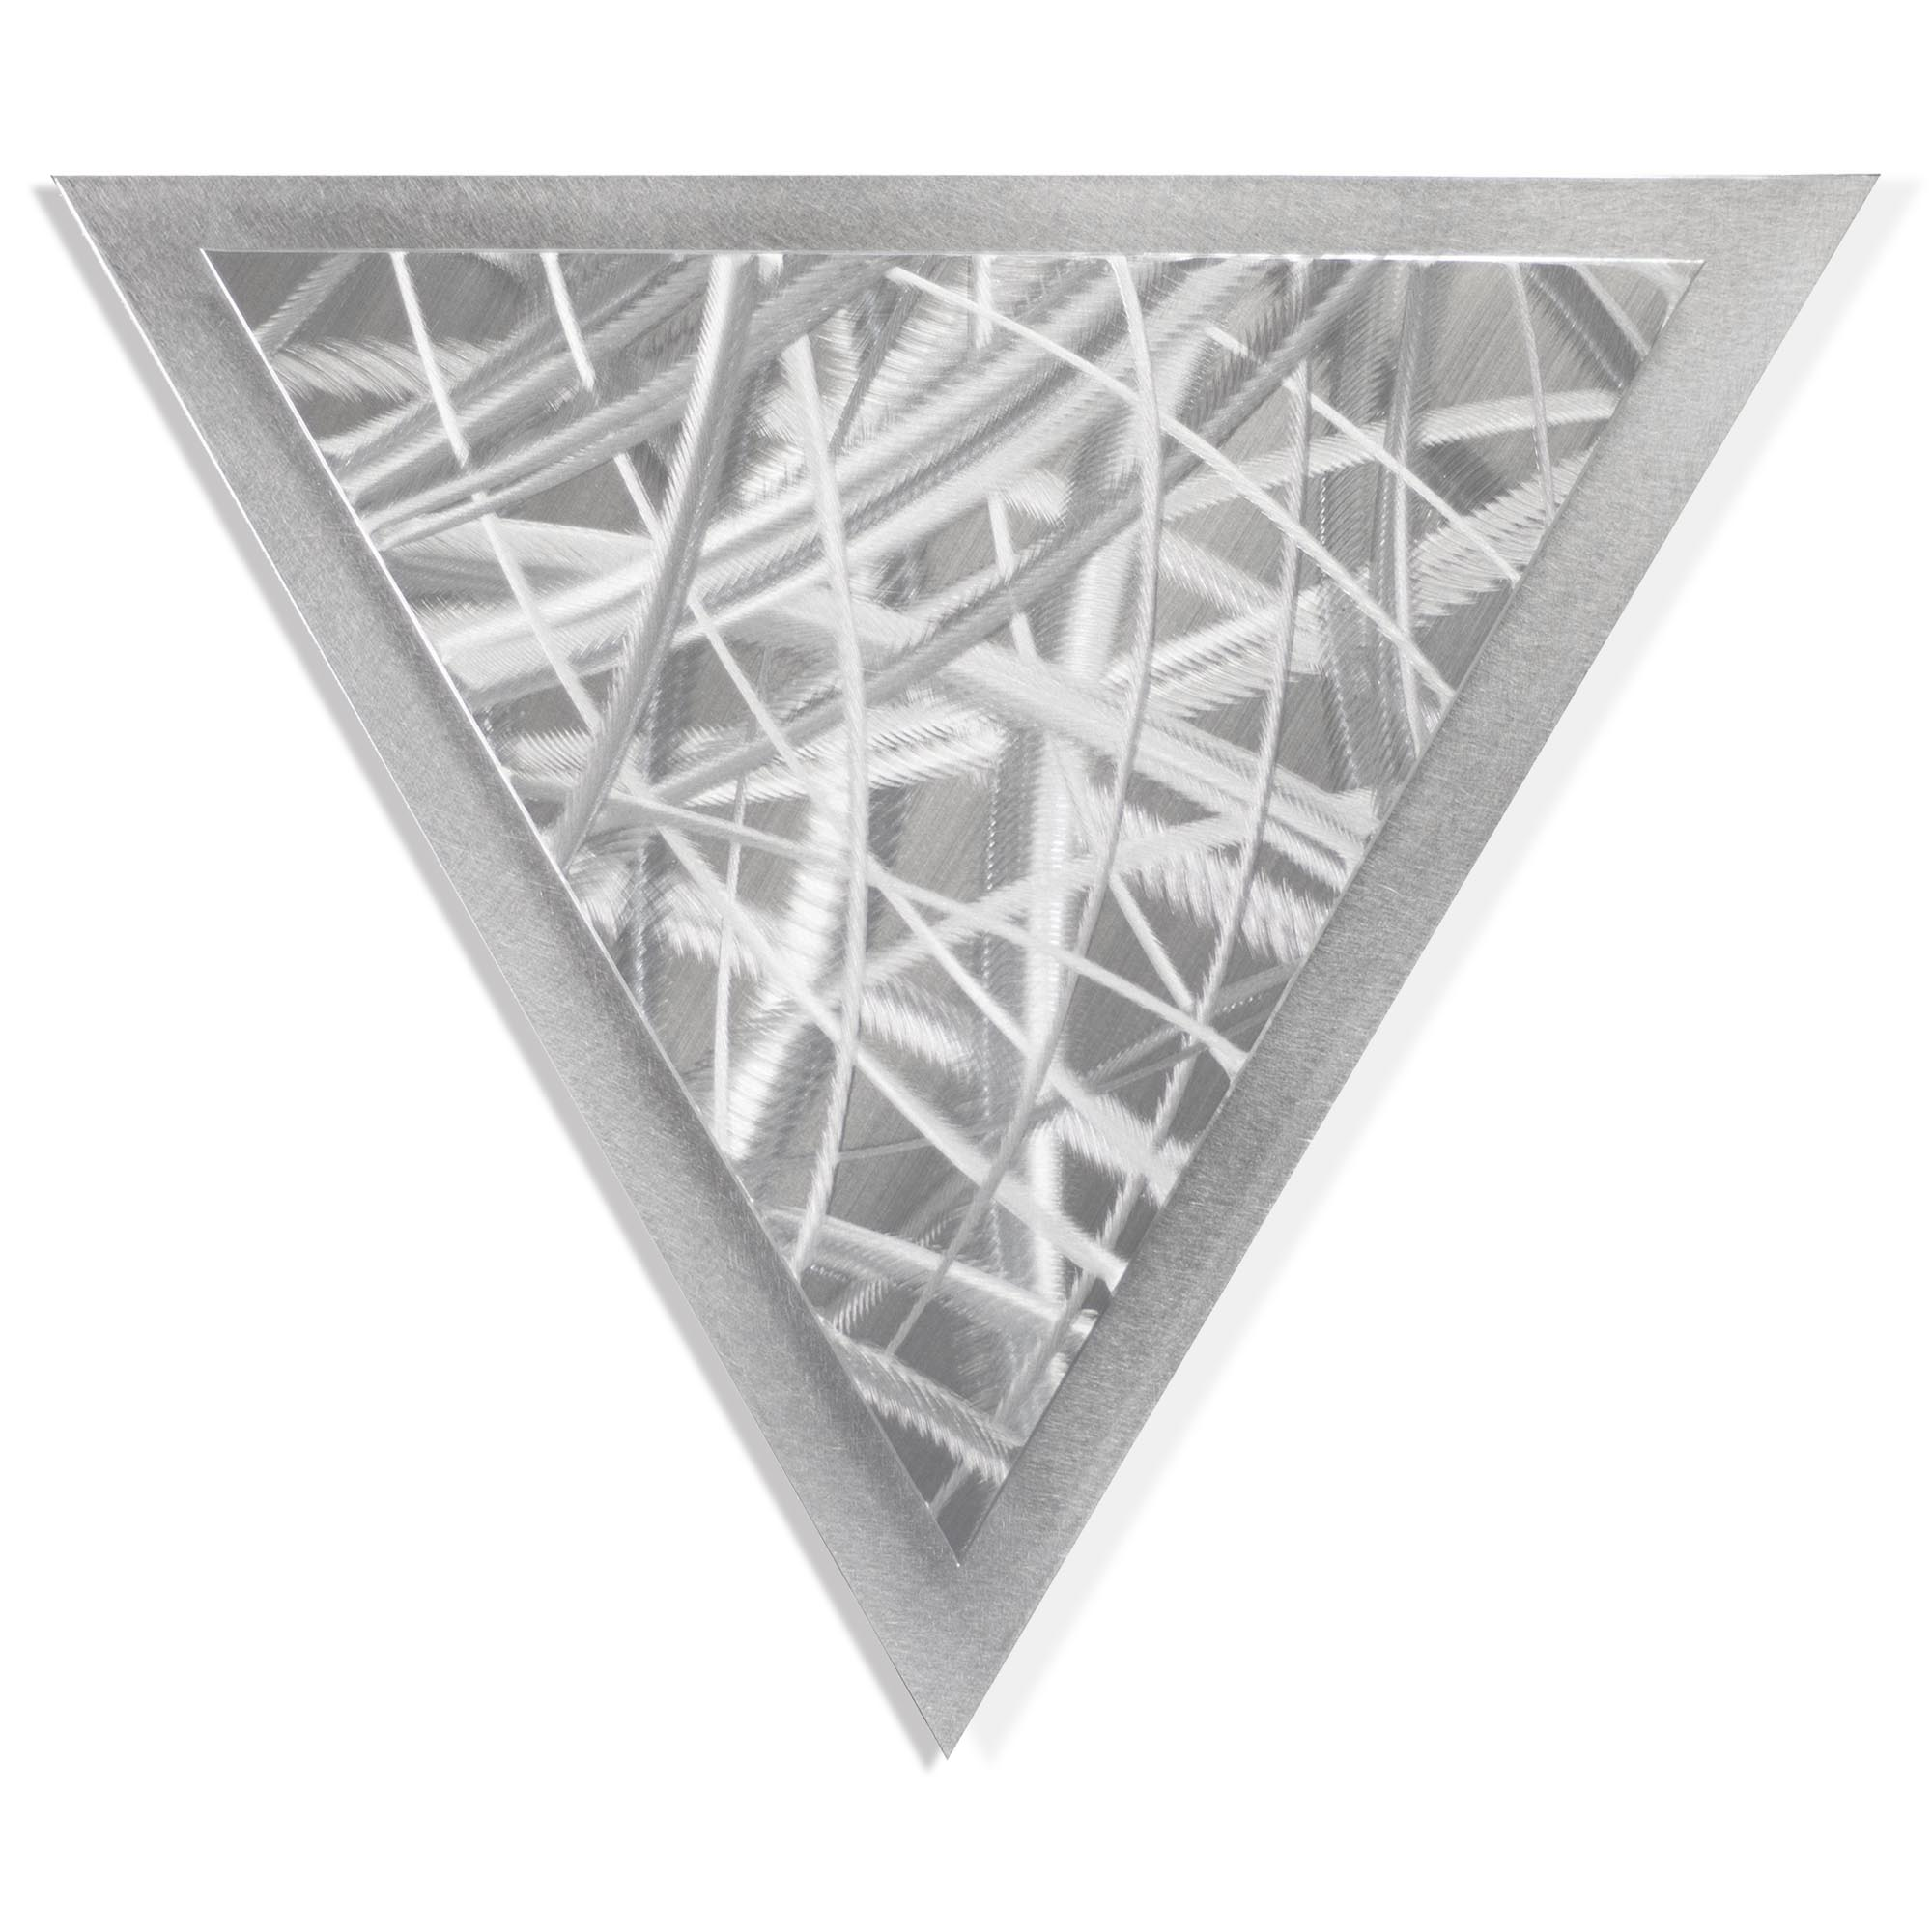 Helena Martin 'Thatched Angle' 15in x 13in Modern Metal Art on Ground Metal